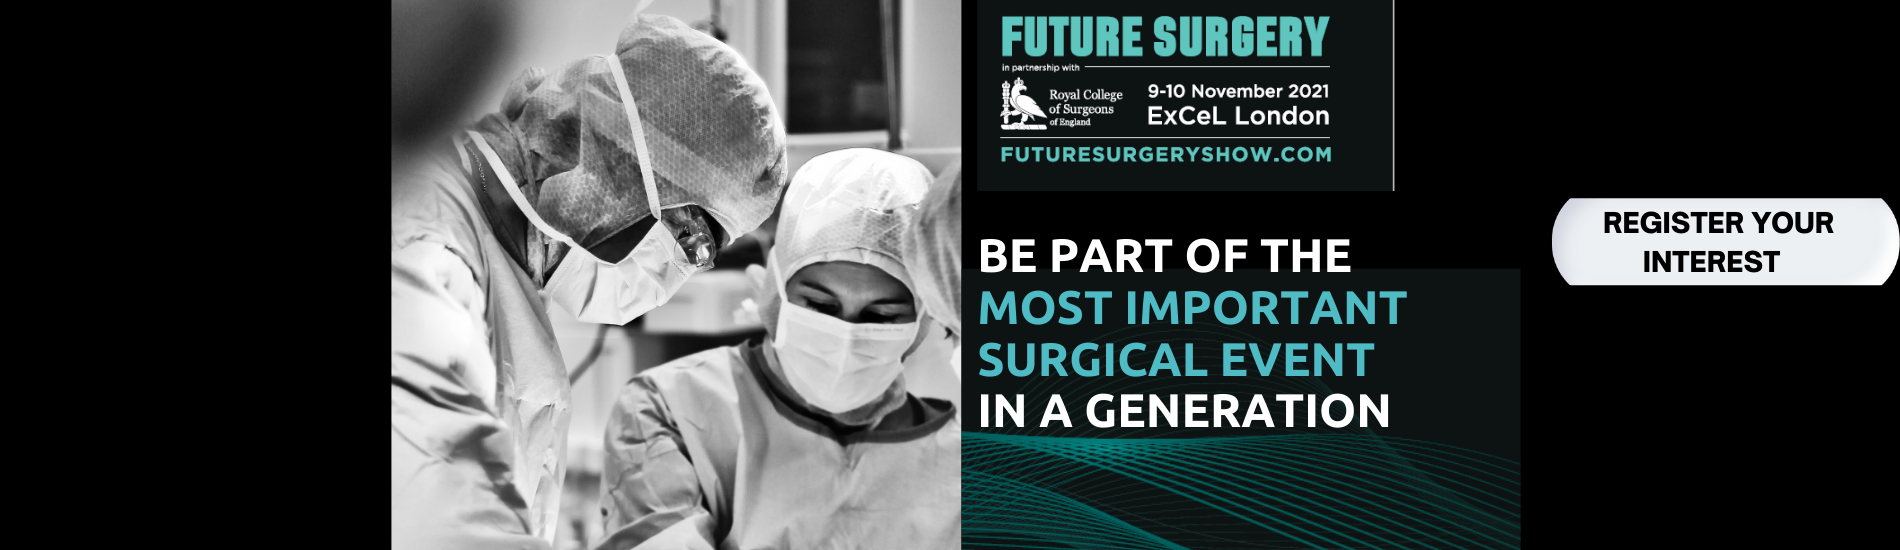 The Future Surgery Show 2021 -n Register your Interest for November 9-10 at ExCel London